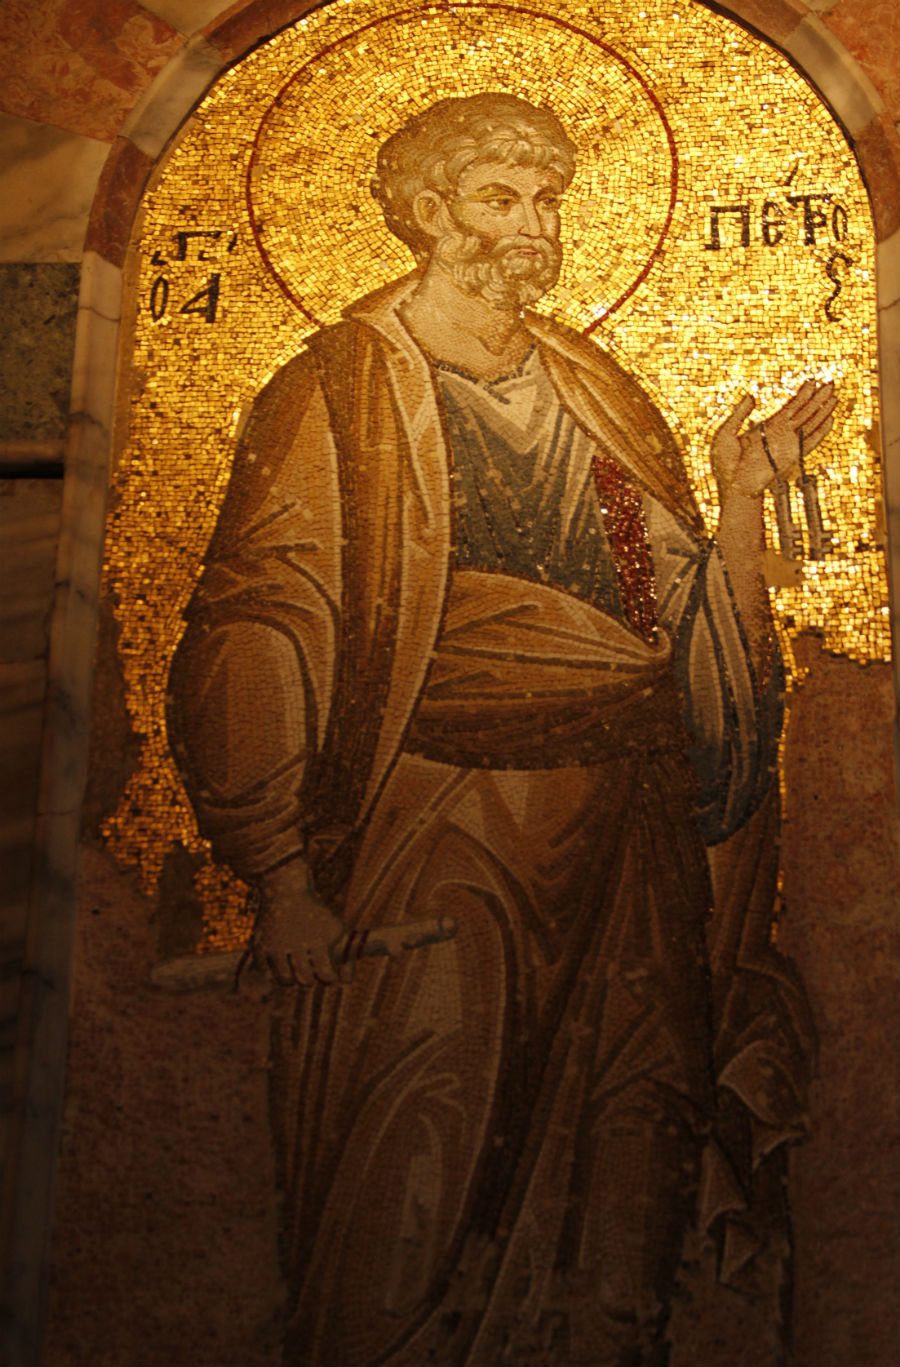 Medieval mosaic of Saint Peter in the Chora Church in Istanbul Turkey